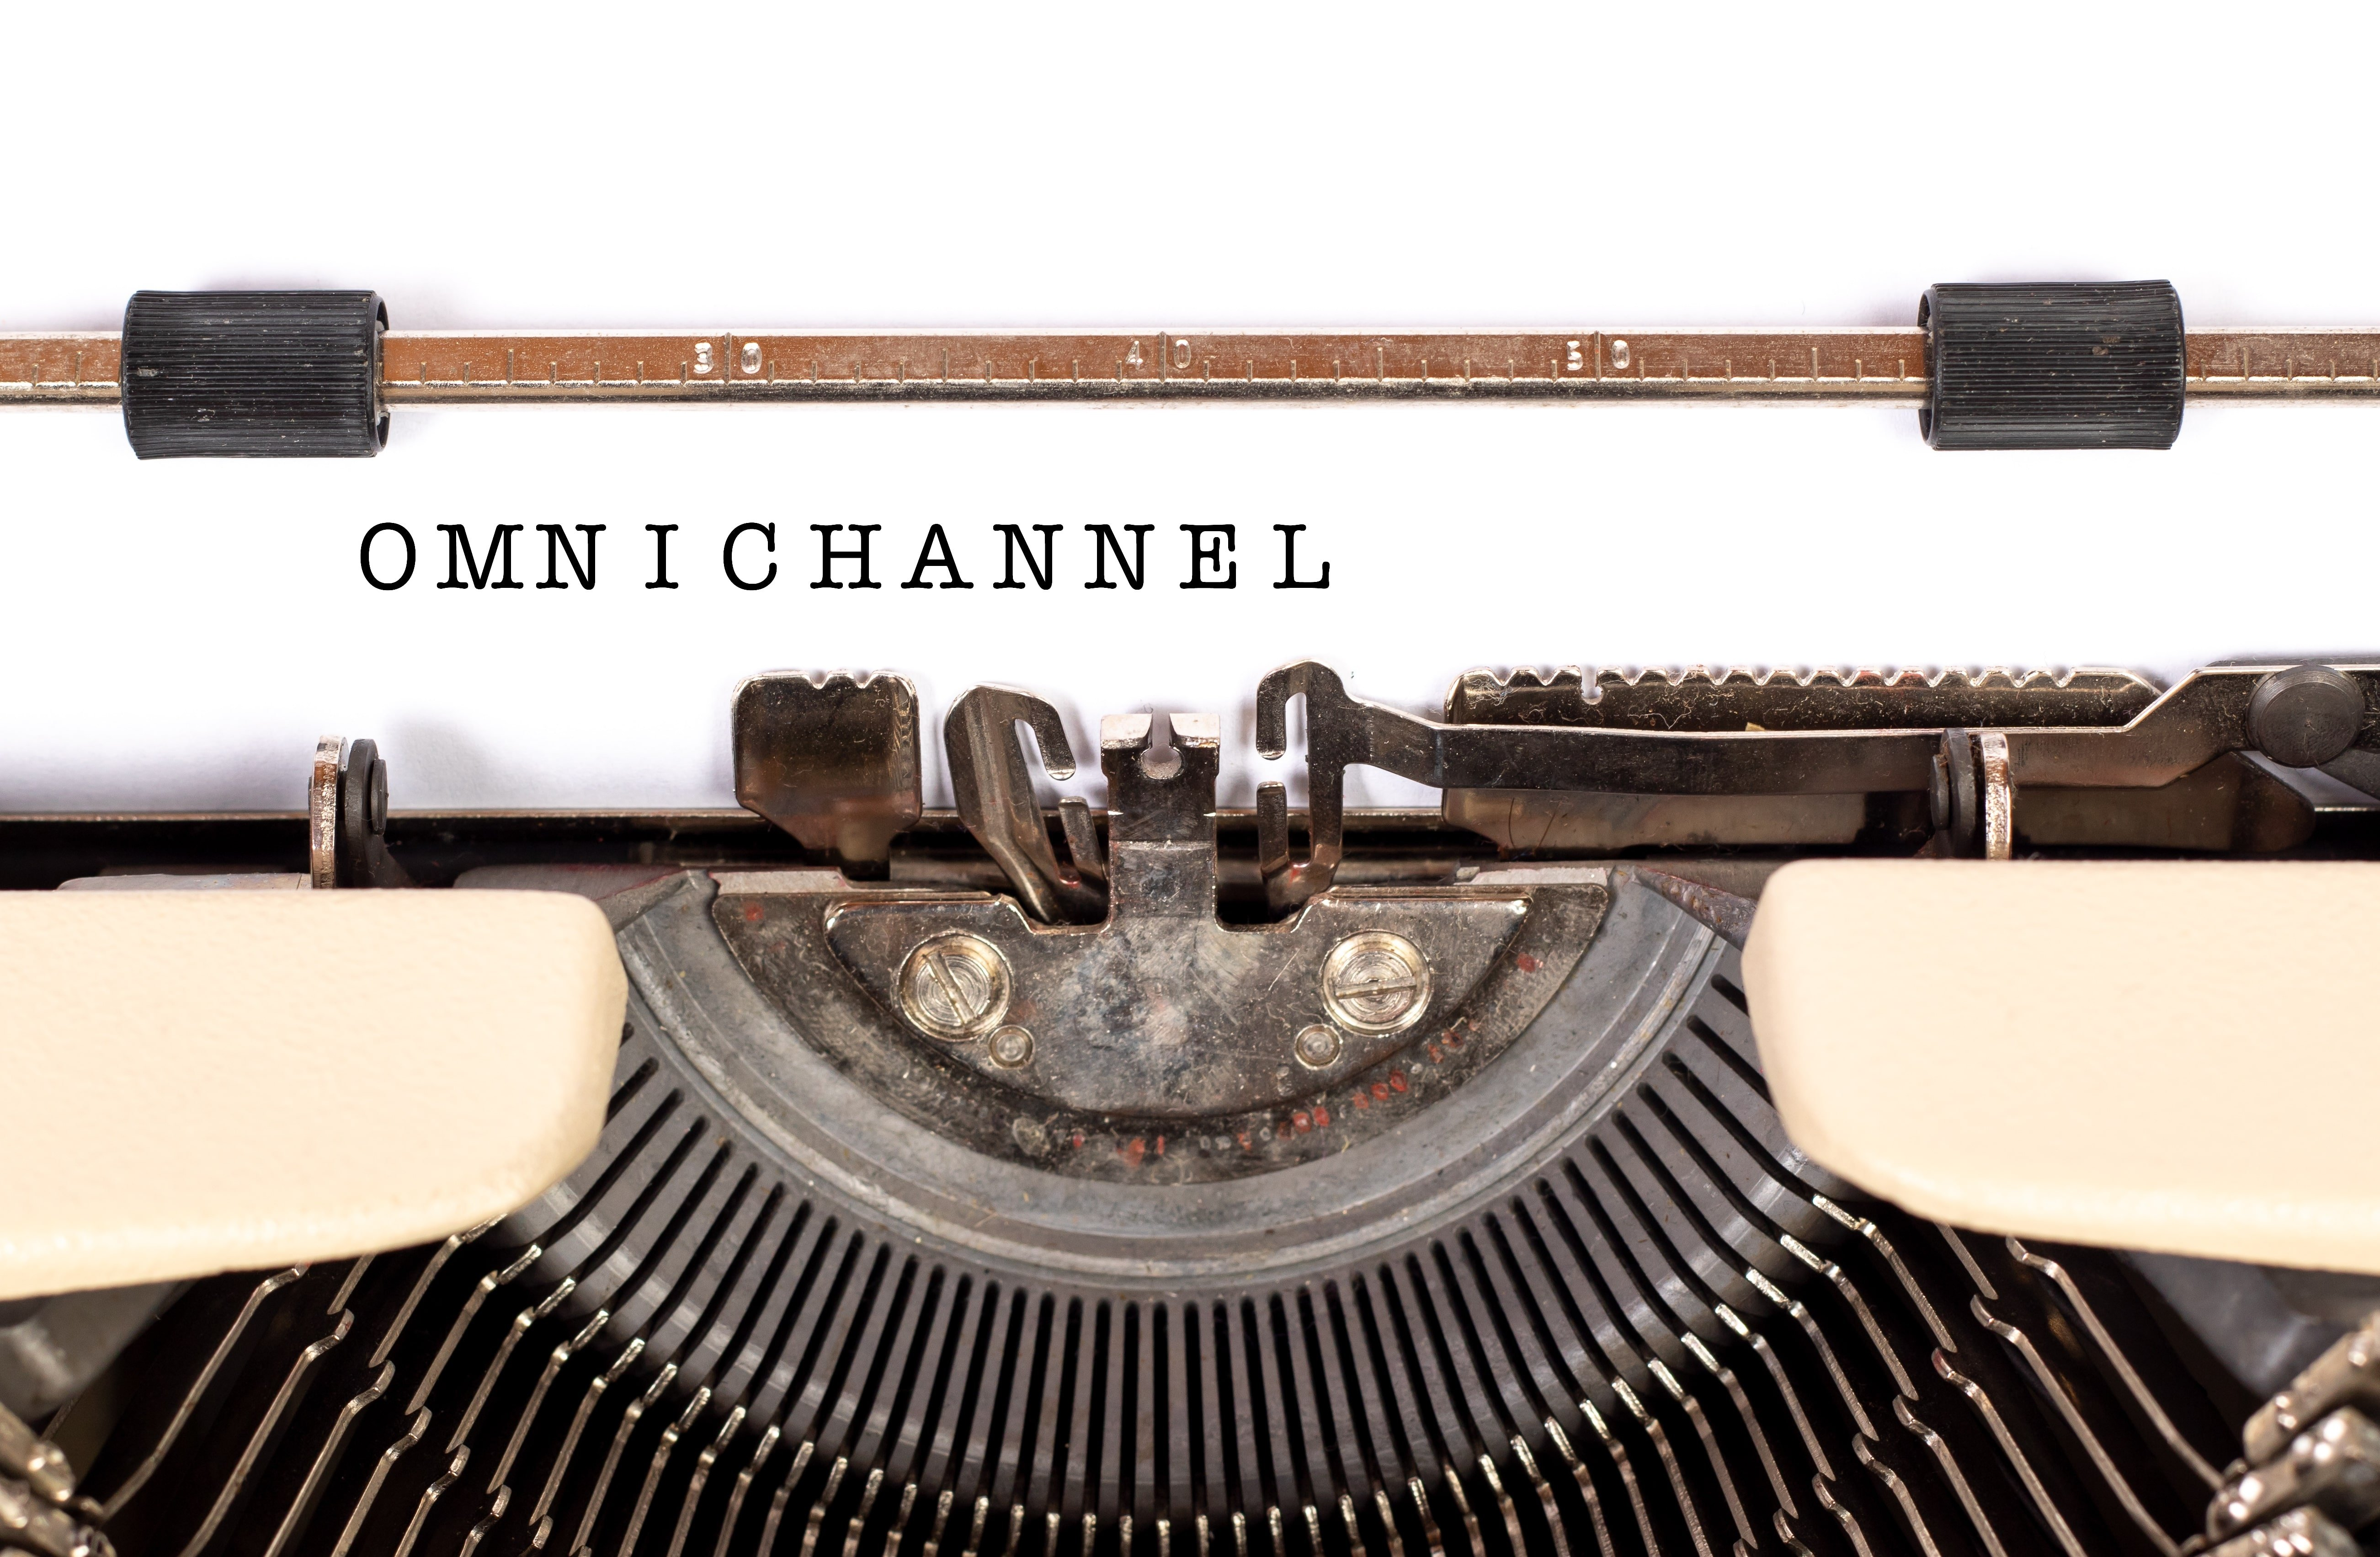 How to design an omnichannel strategy customers love